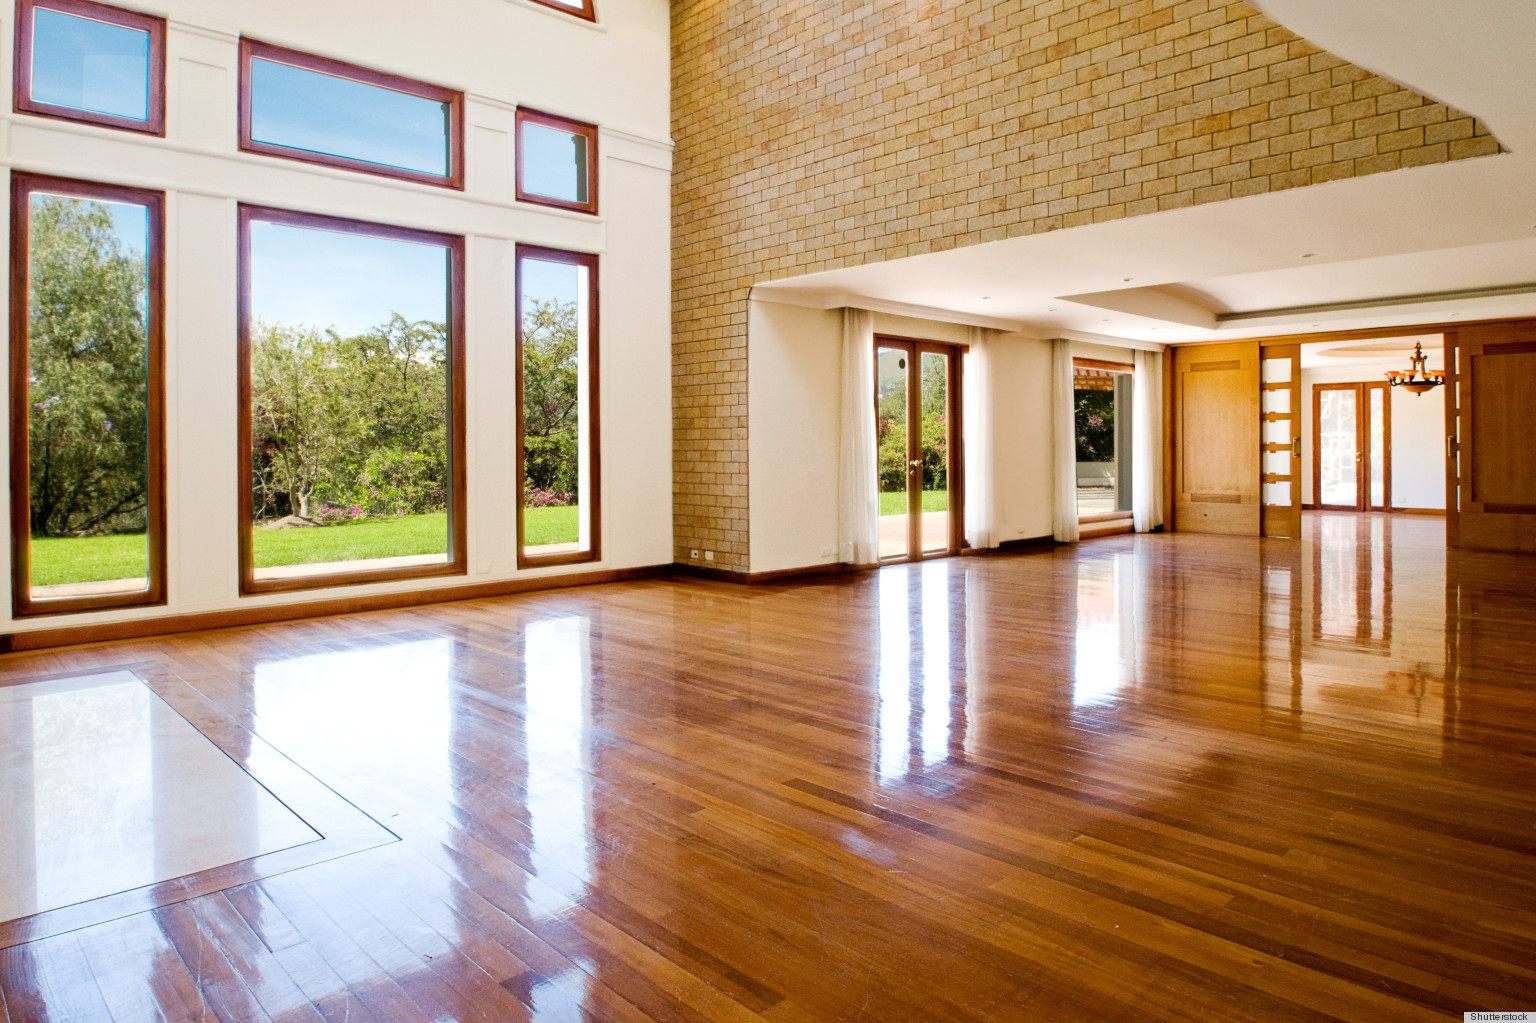 Types Of Windows Get A Clear Look At Your Options With This Overview Of Styles Huffpost